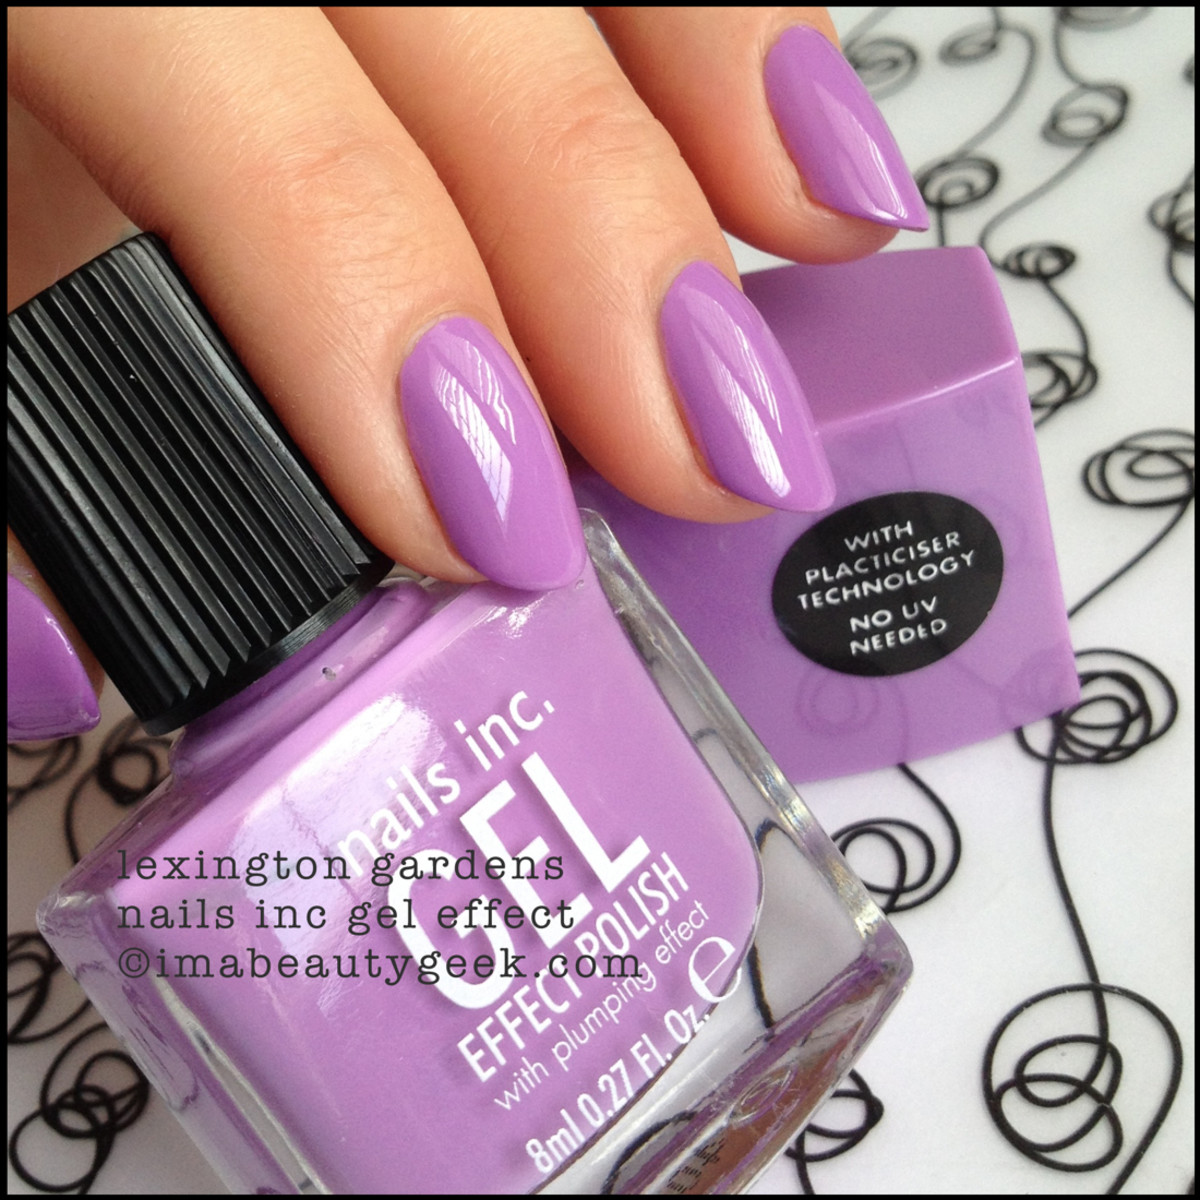 Nails Inc Lexington Gardens Gel Effect Nail Polish ManiGeek Swatch